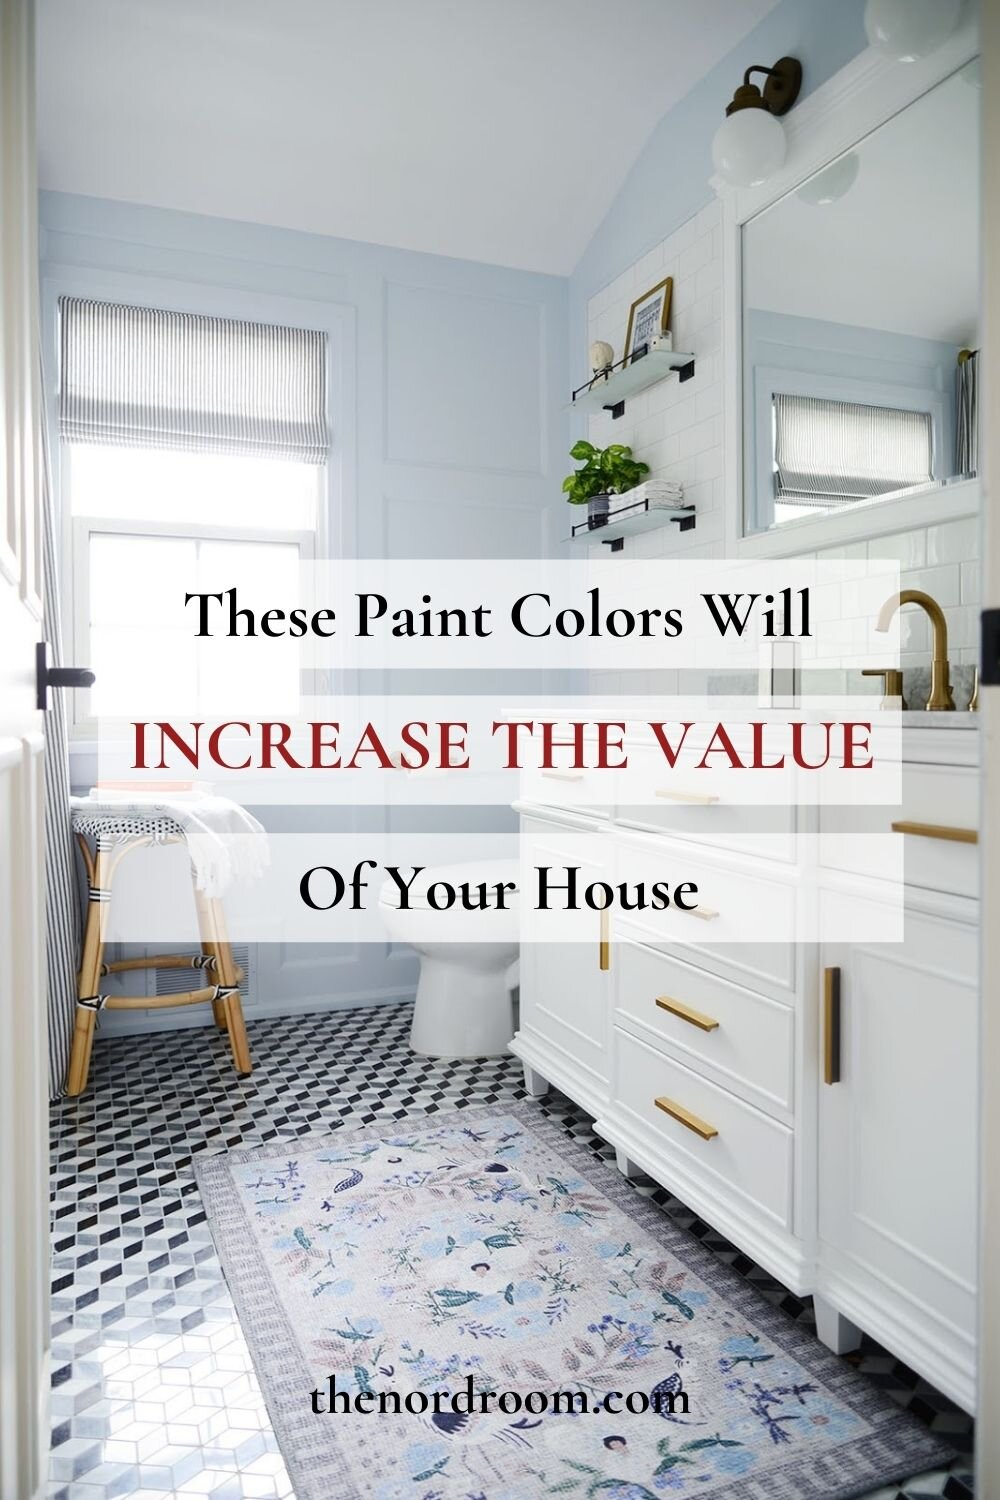 Paint Colors That Will Add Value To Your House